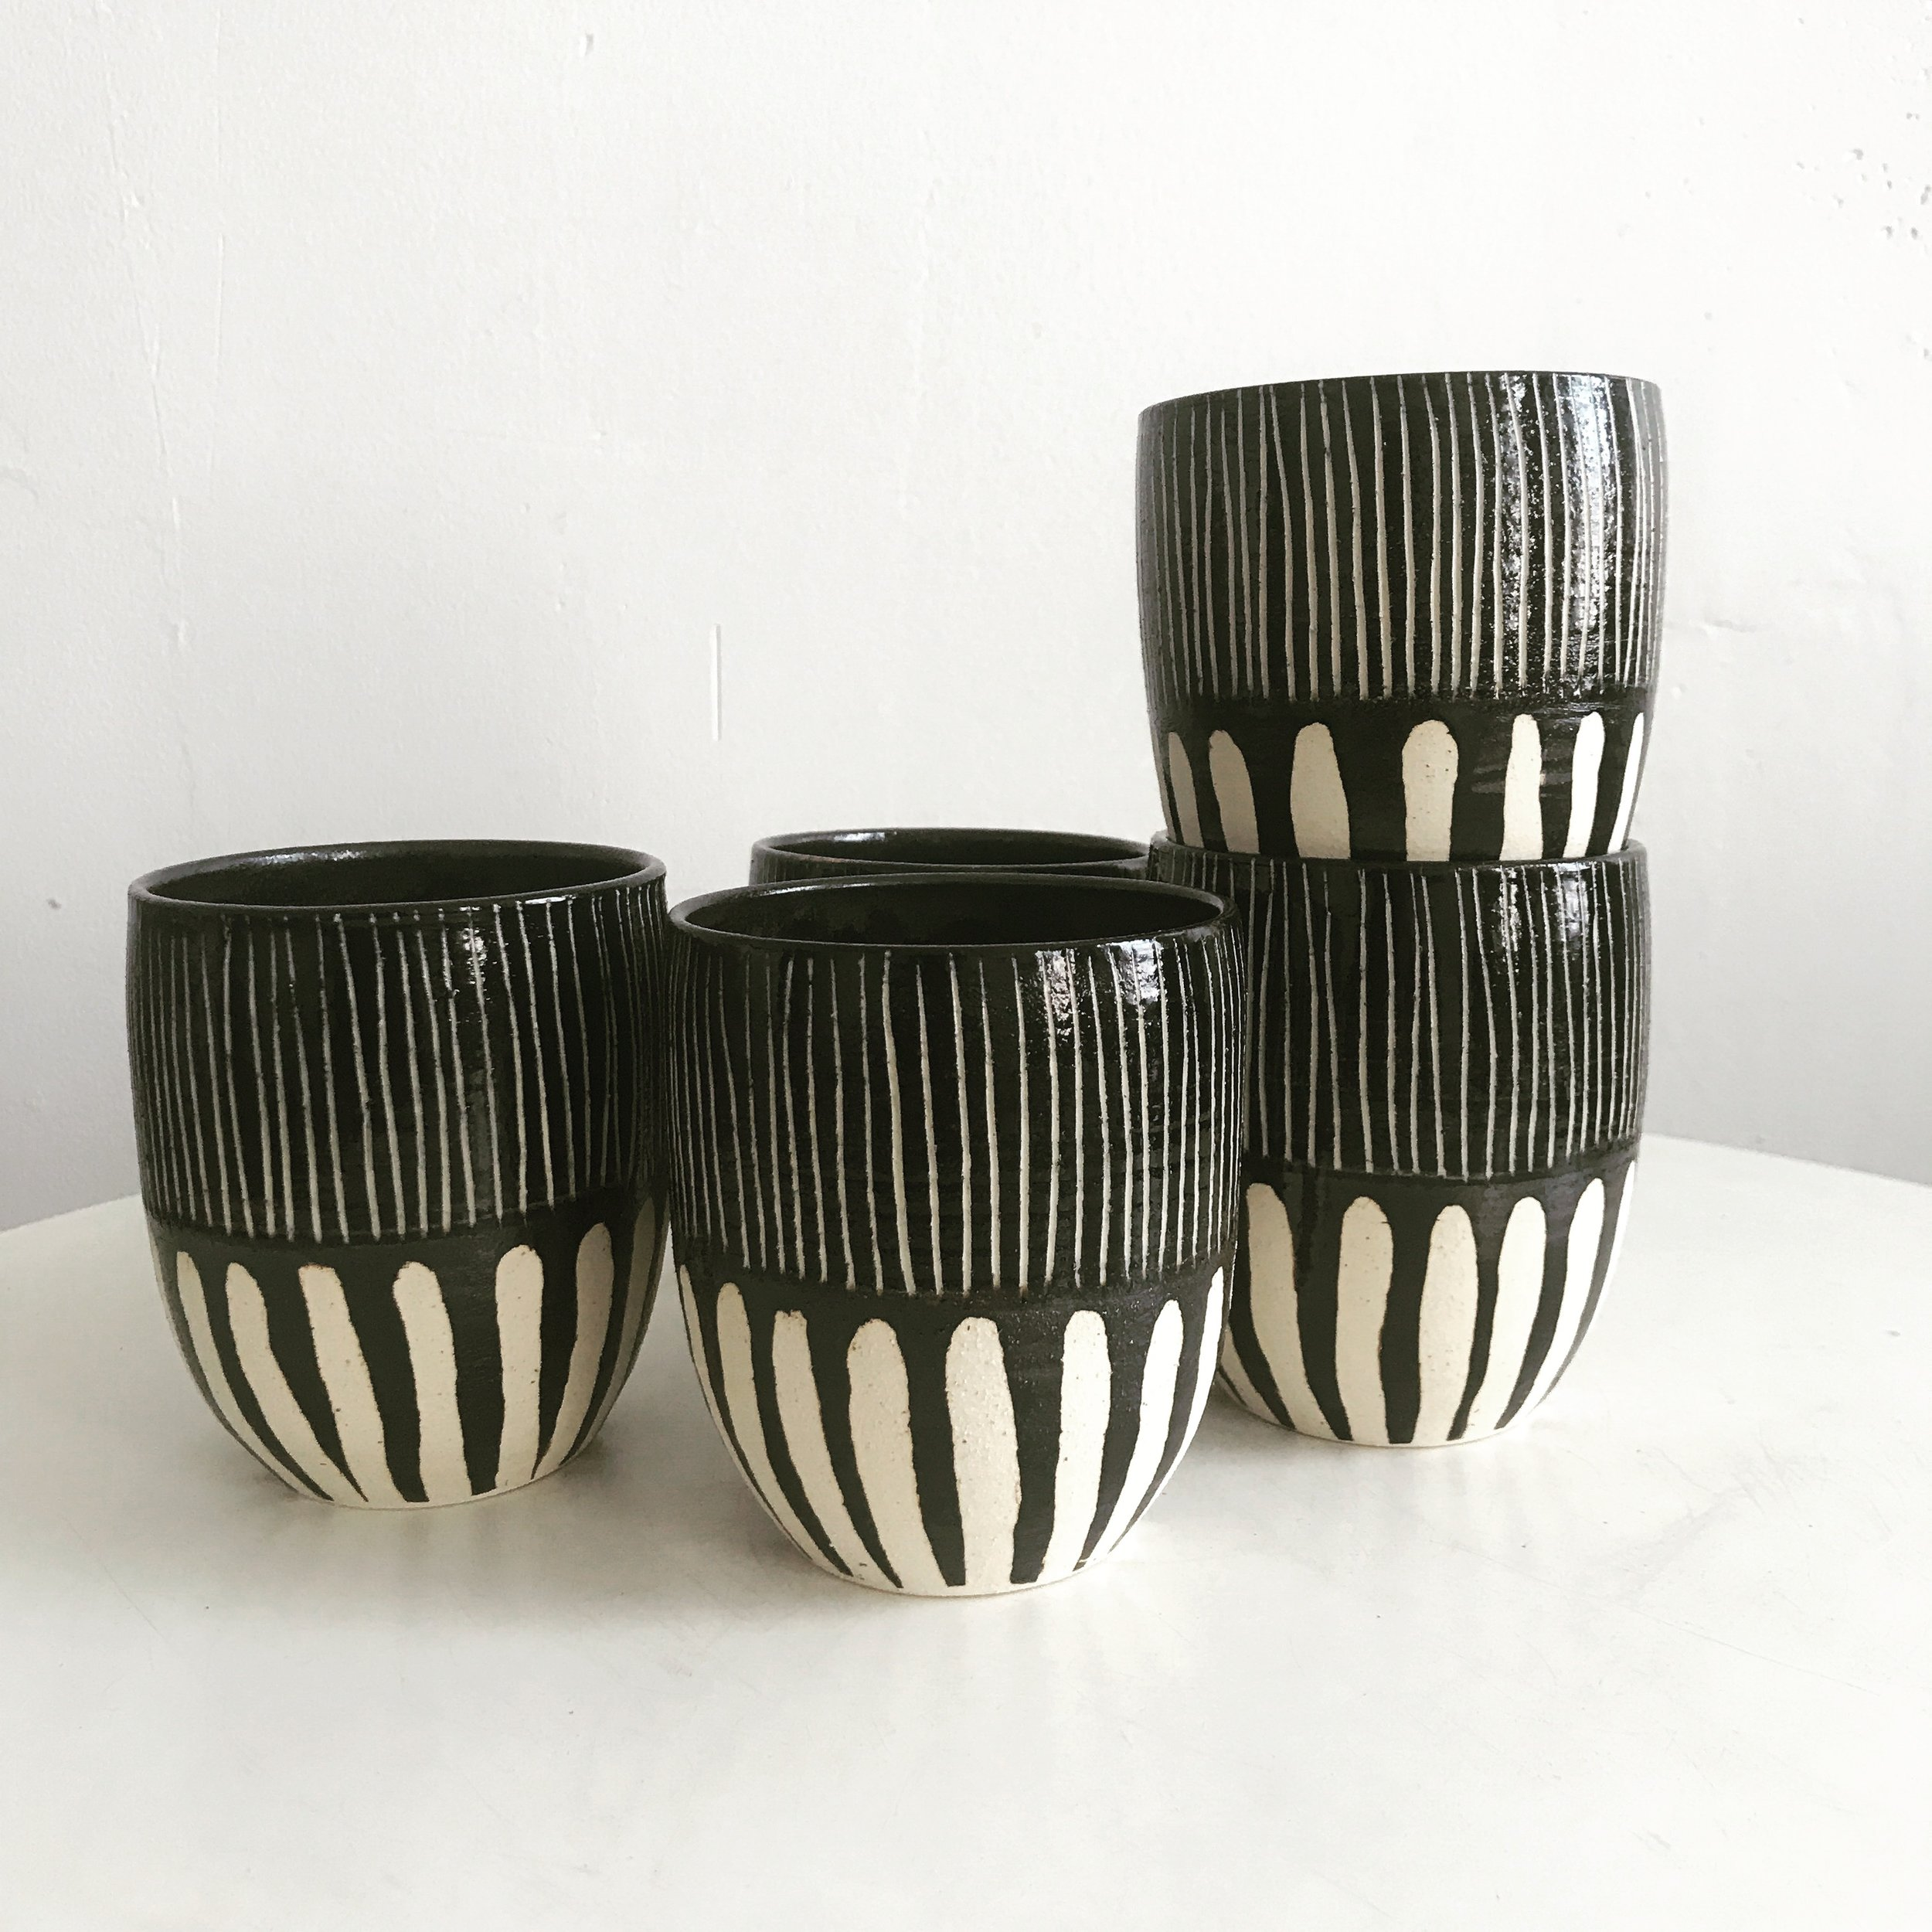 #2: Black & White Decorative Mug - Perfect for drinks or he can use it to hold pens on his desk.